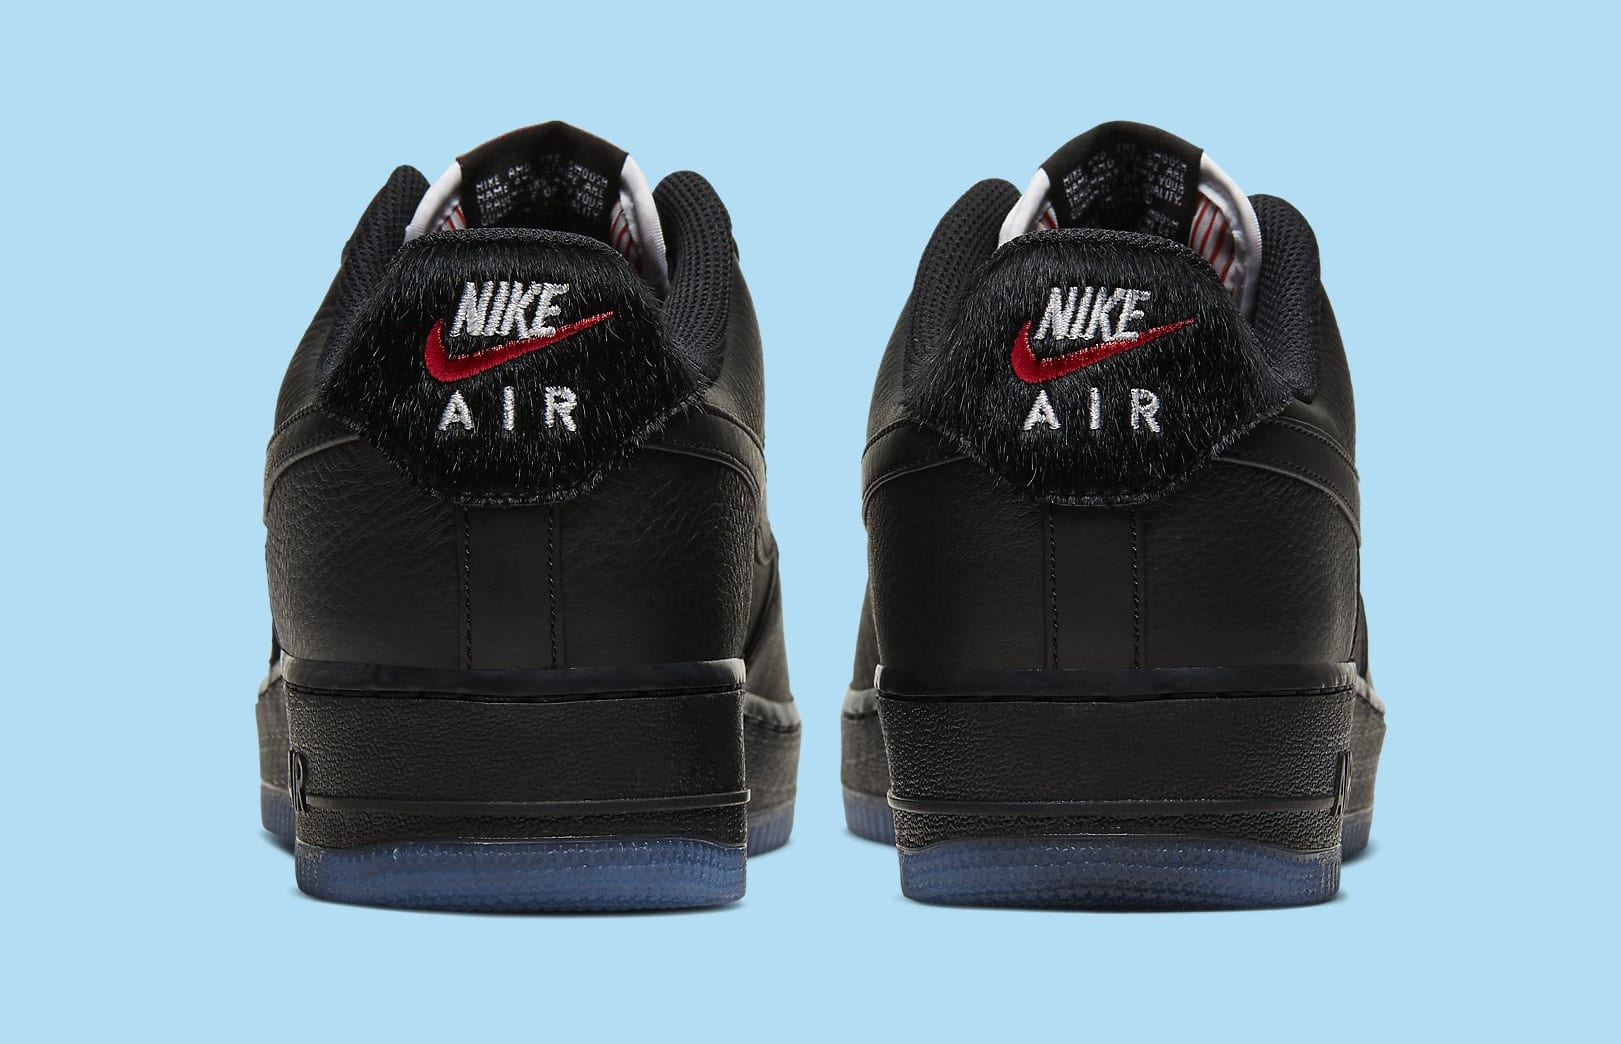 nike-air-force-1-low-chicago-ct1520-001-heel